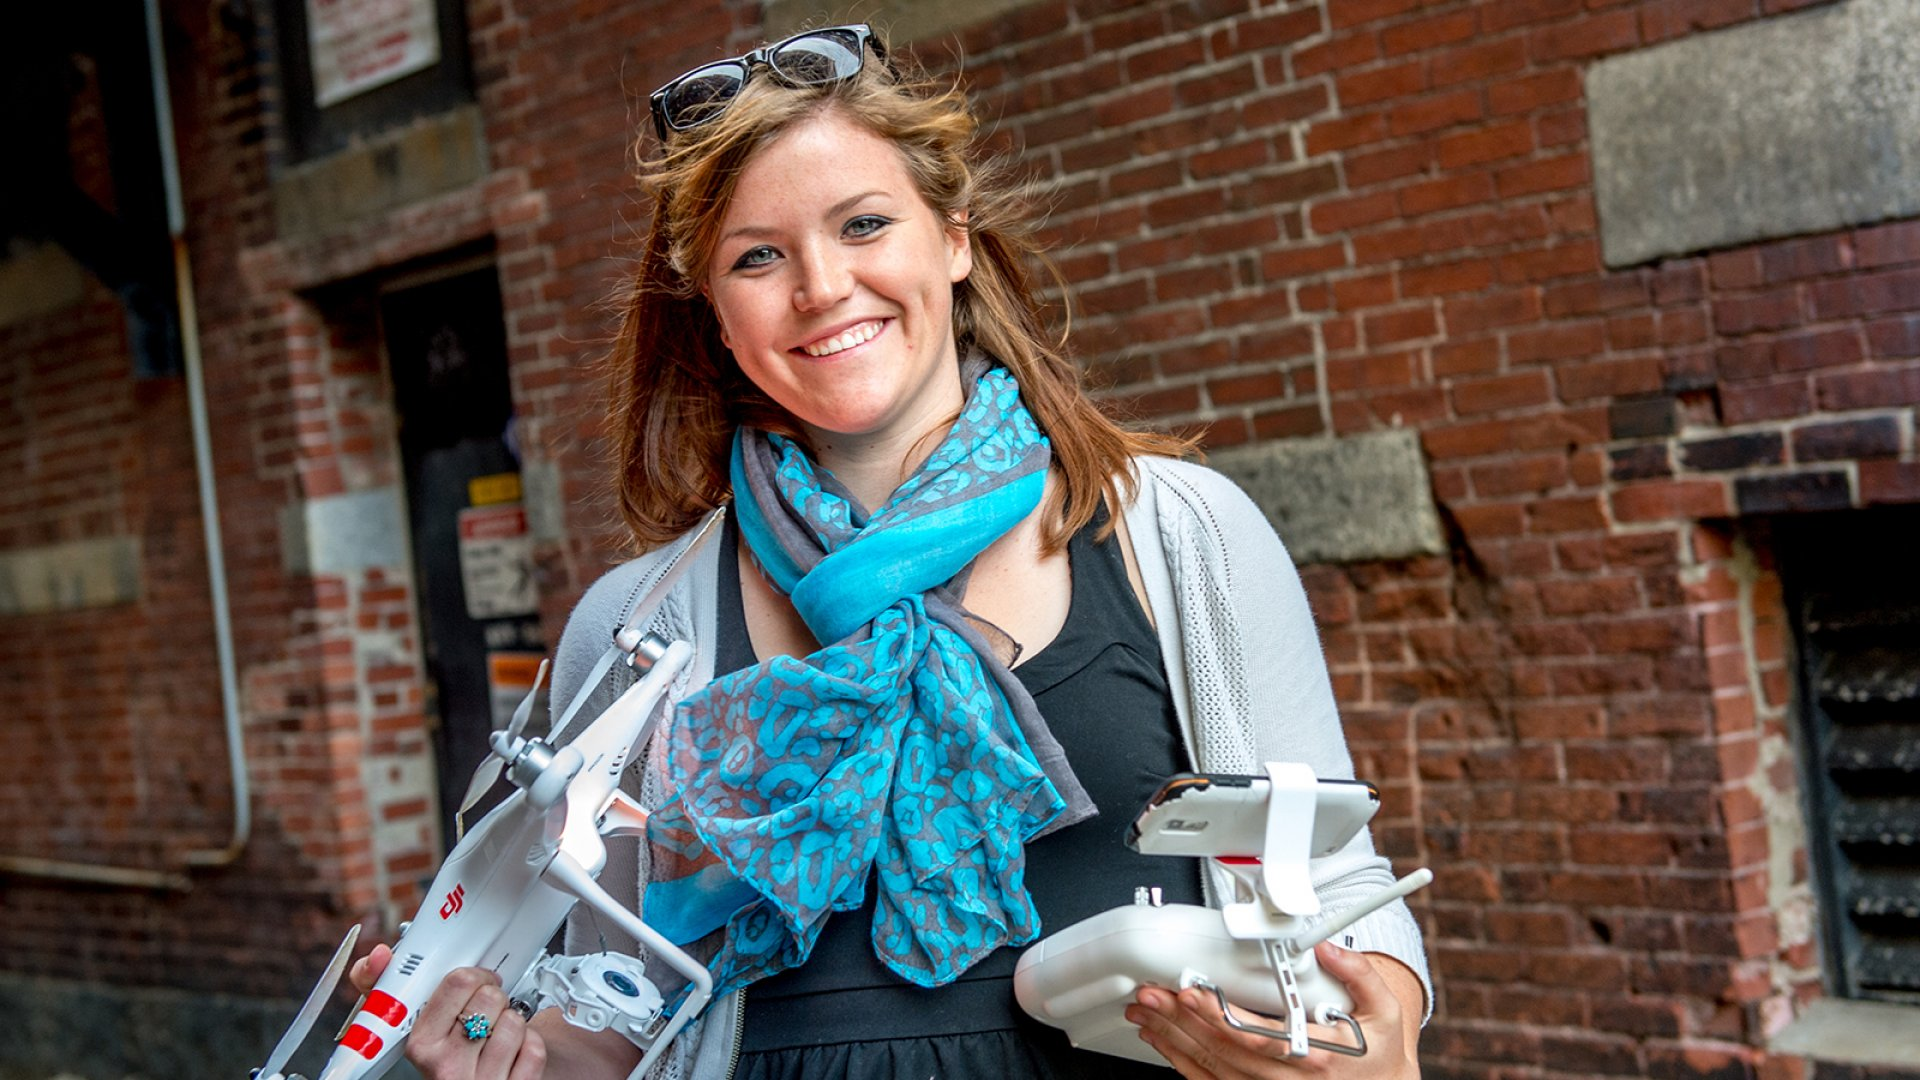 Abby Speicher, CEO and founder of DARTdrones.